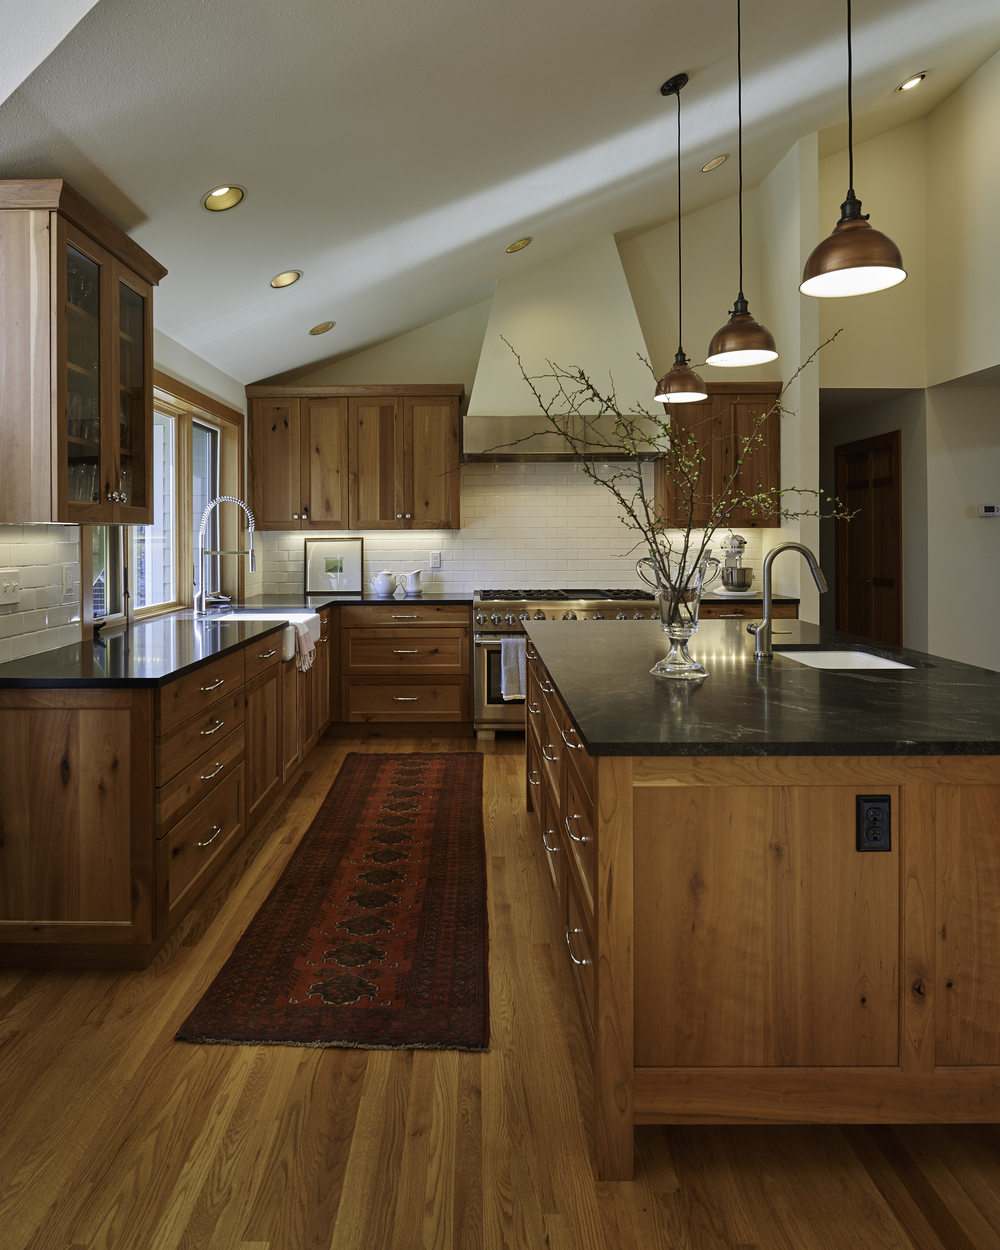 Five Kitchens-9.jpg